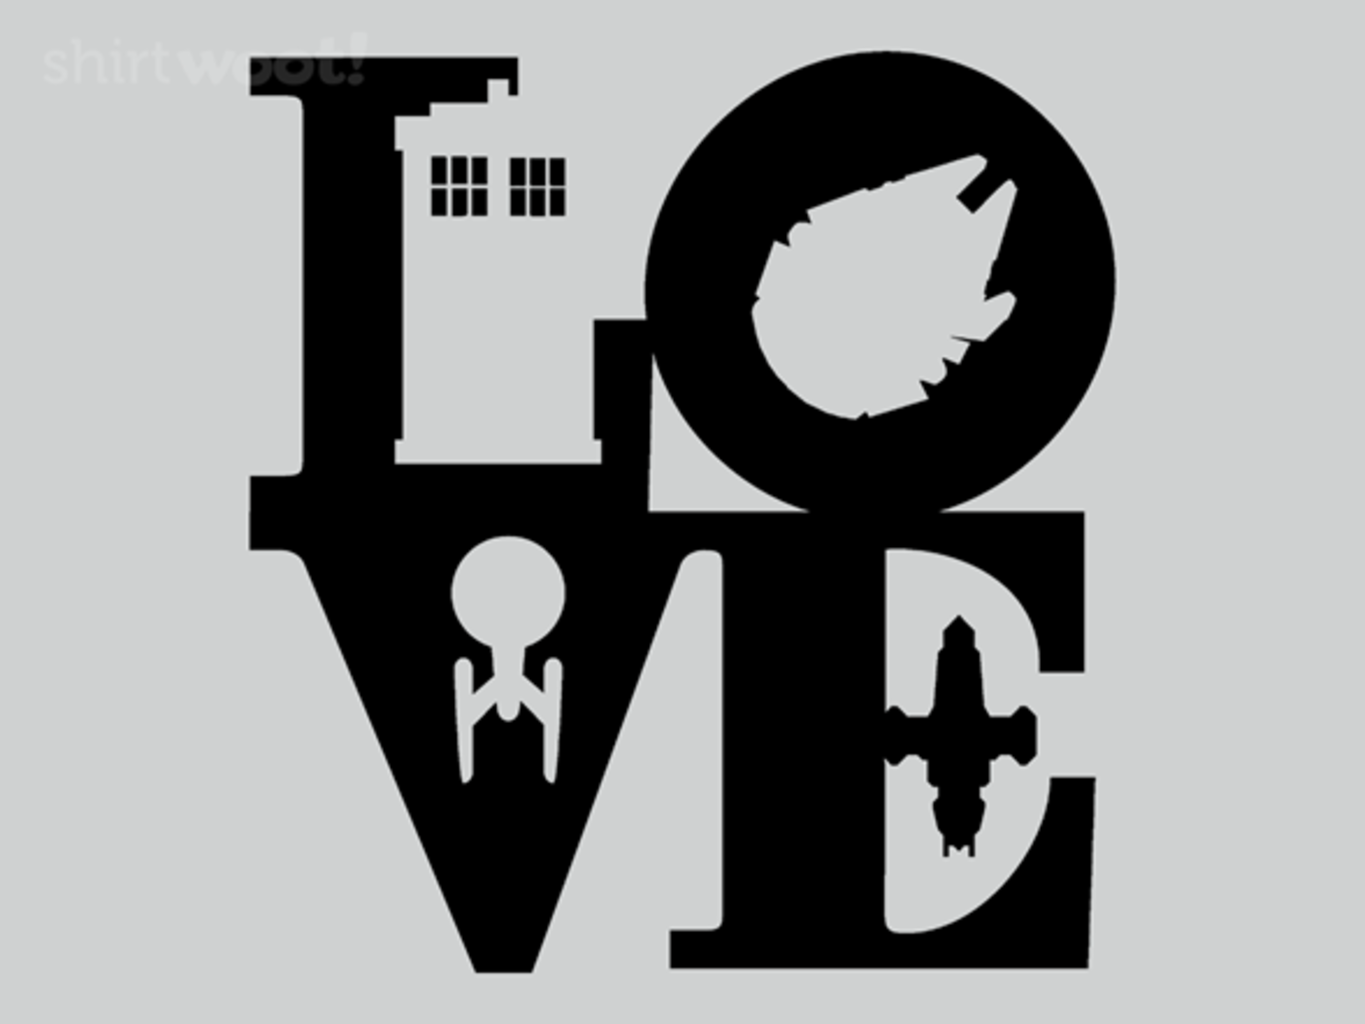 Woot!: I Love Scifi